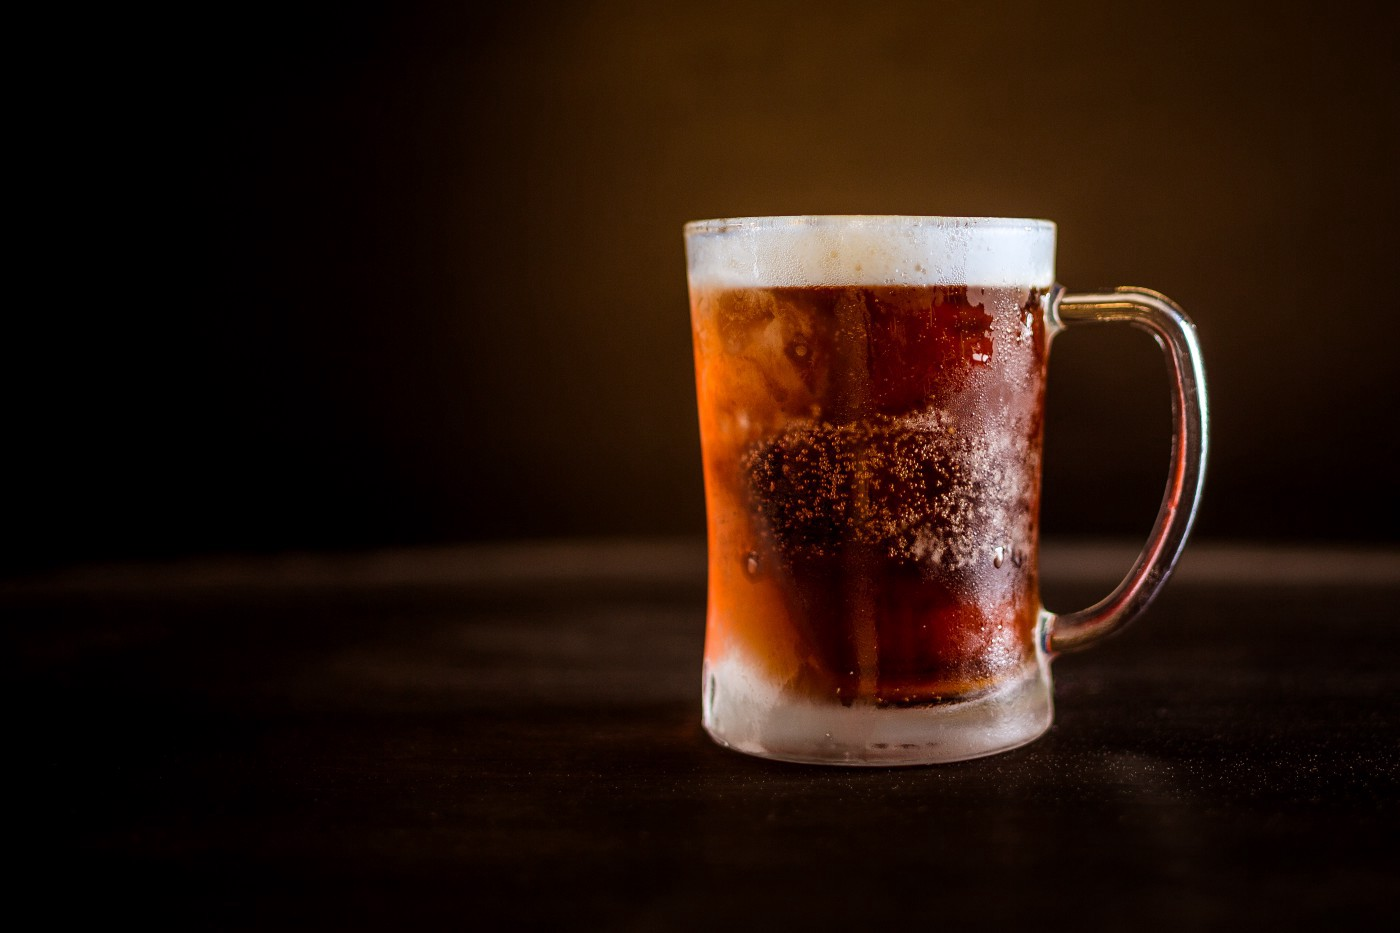 A mug full of beer sits on a wooden bar.